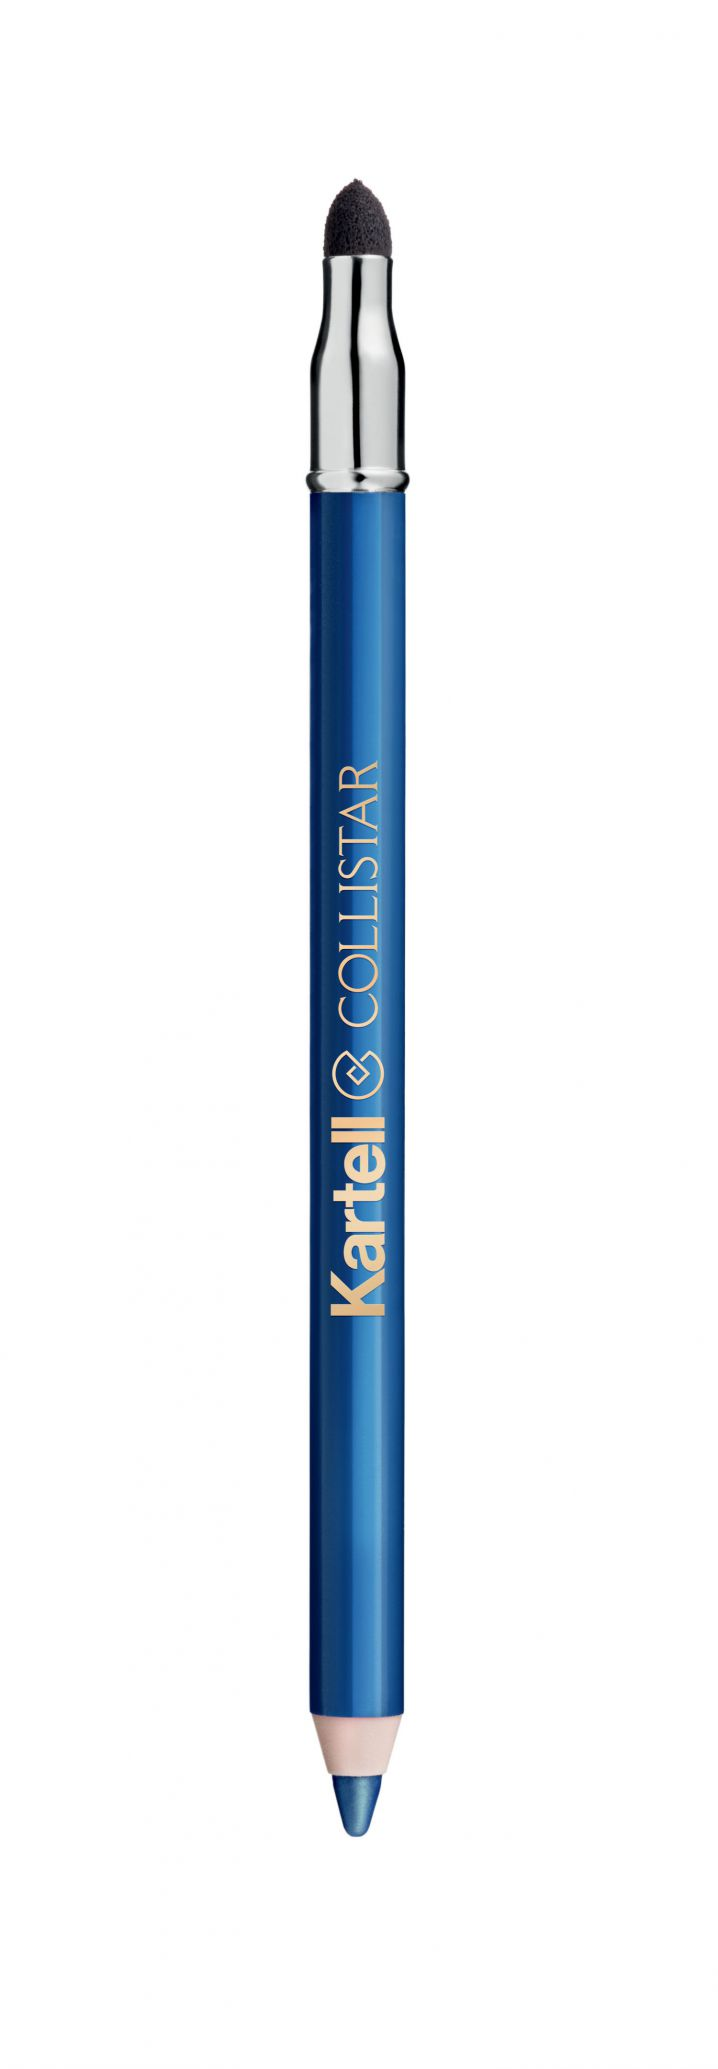 Professional Eye Coloration Actions: Collistar Professional Eye Pencil